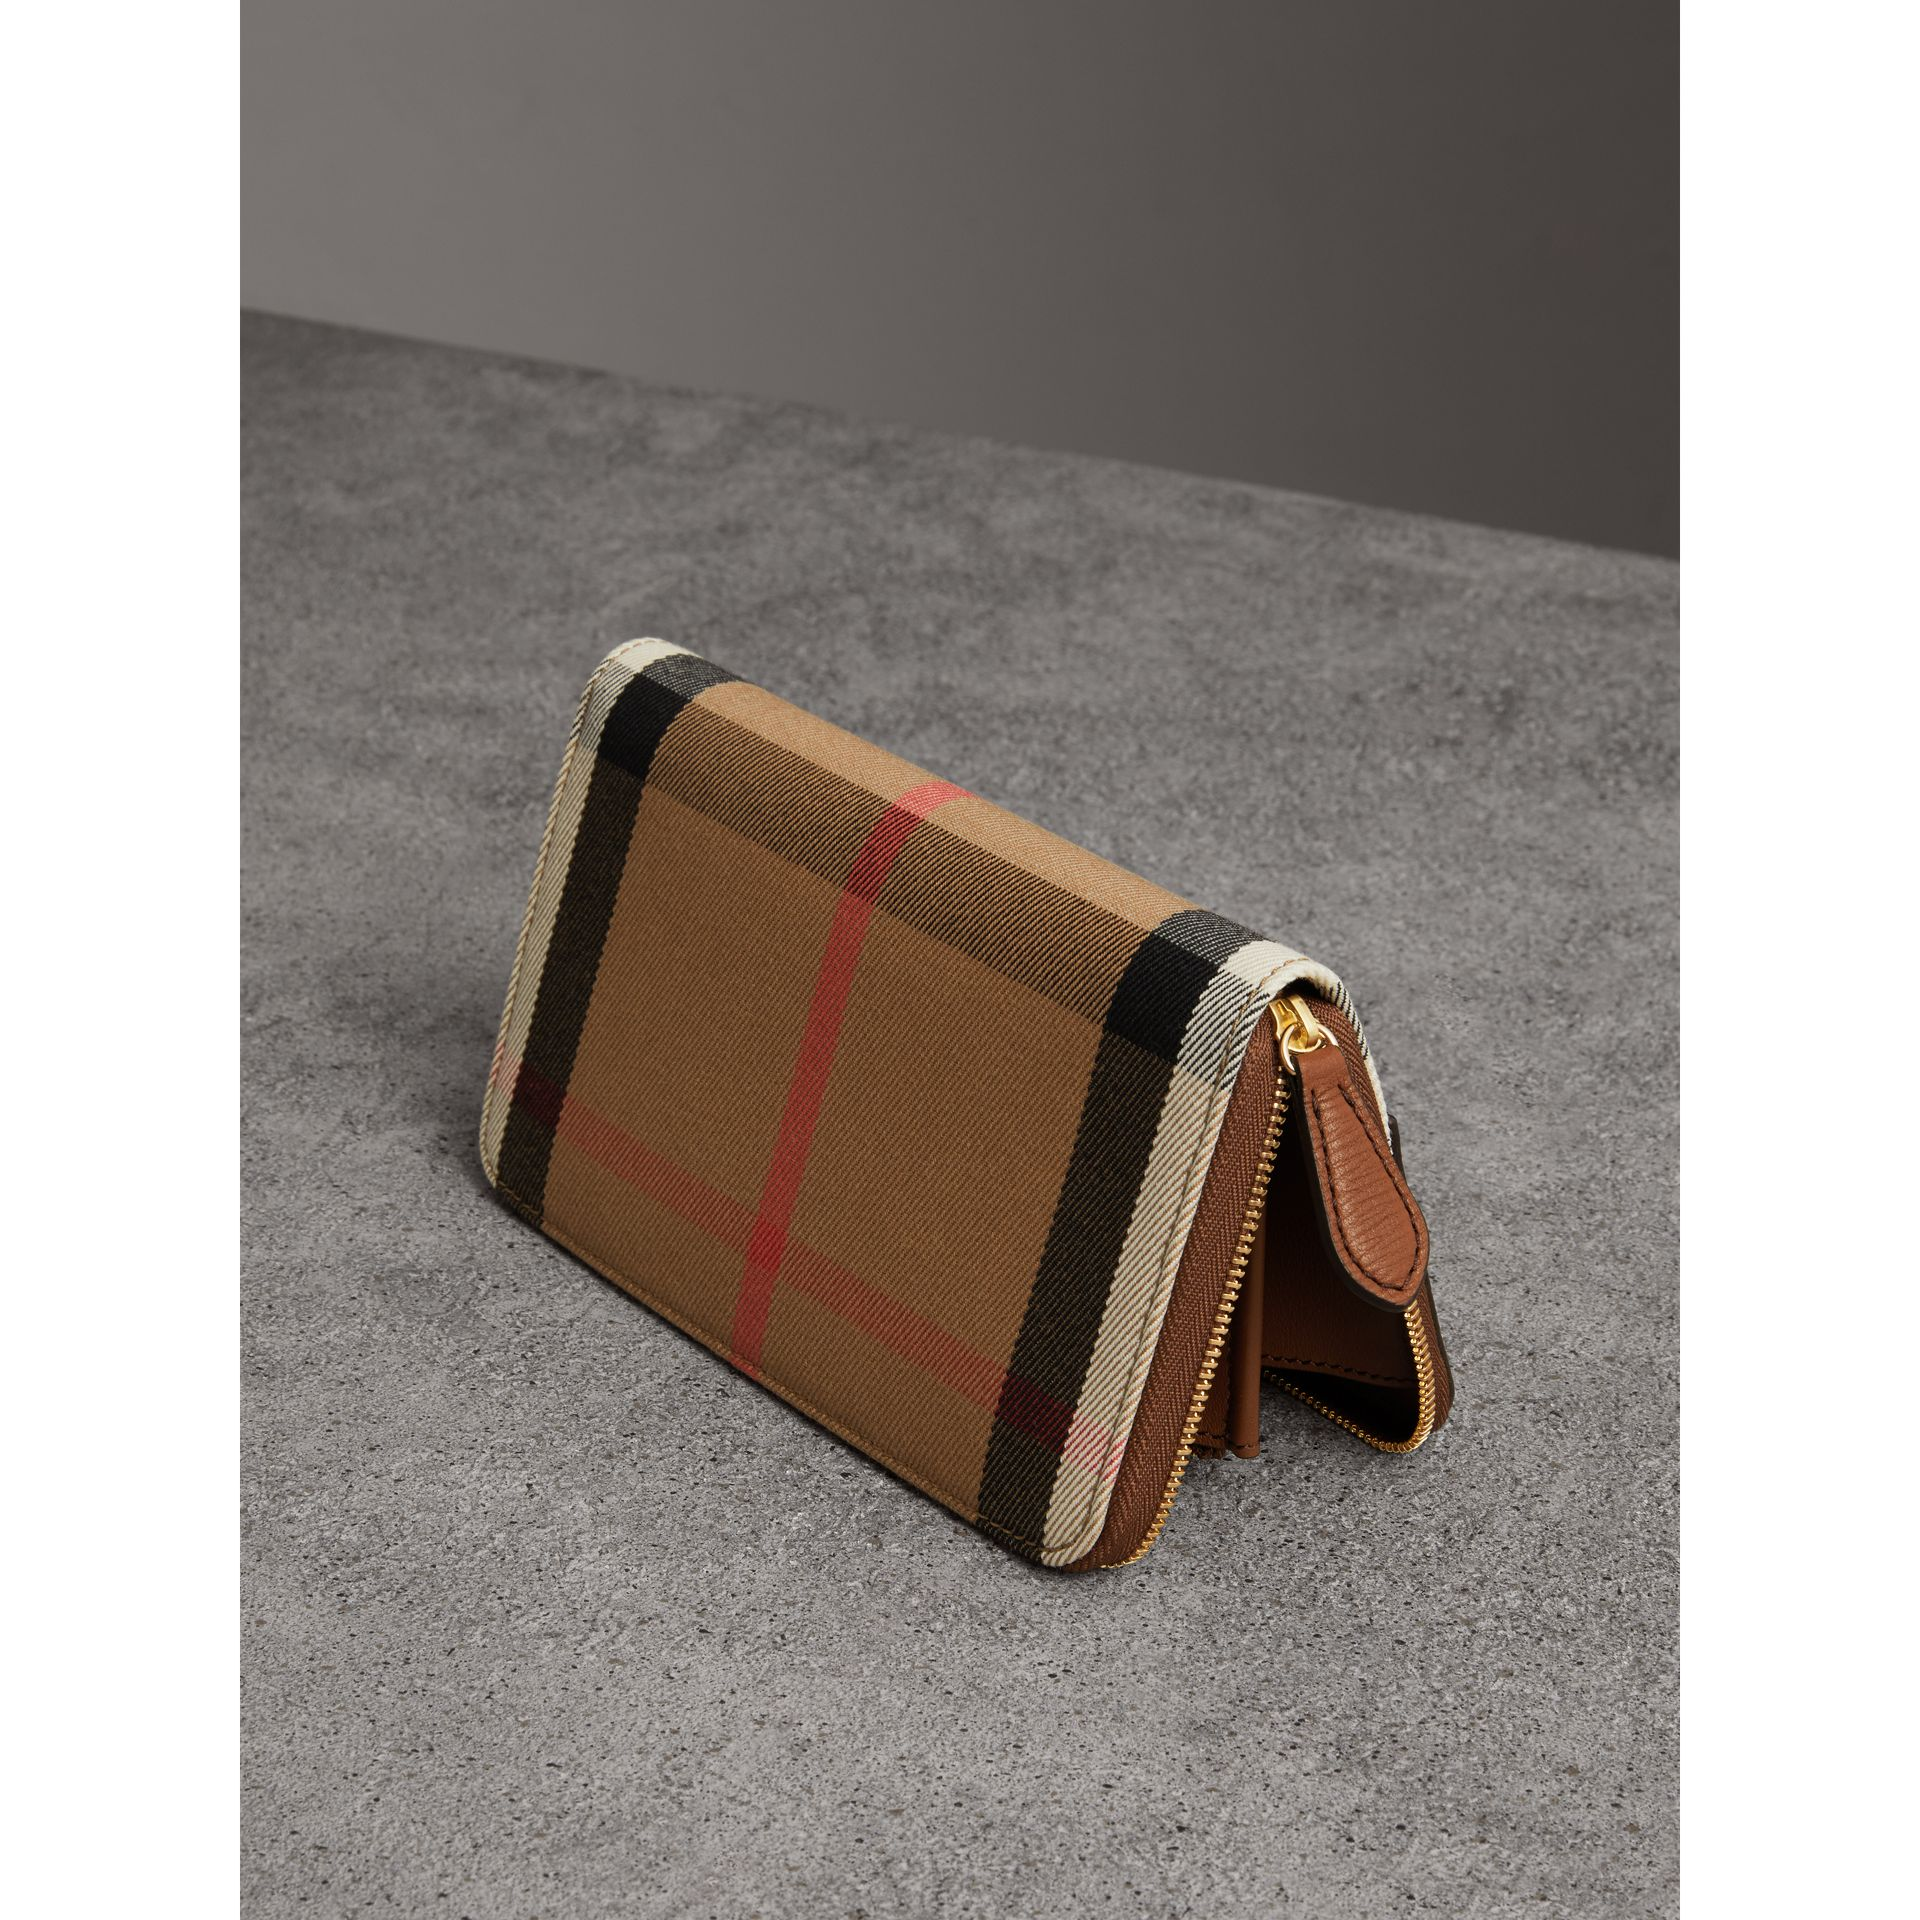 House Check and Leather Ziparound Wallet in Brown Ochre - Women | Burberry Canada - gallery image 2